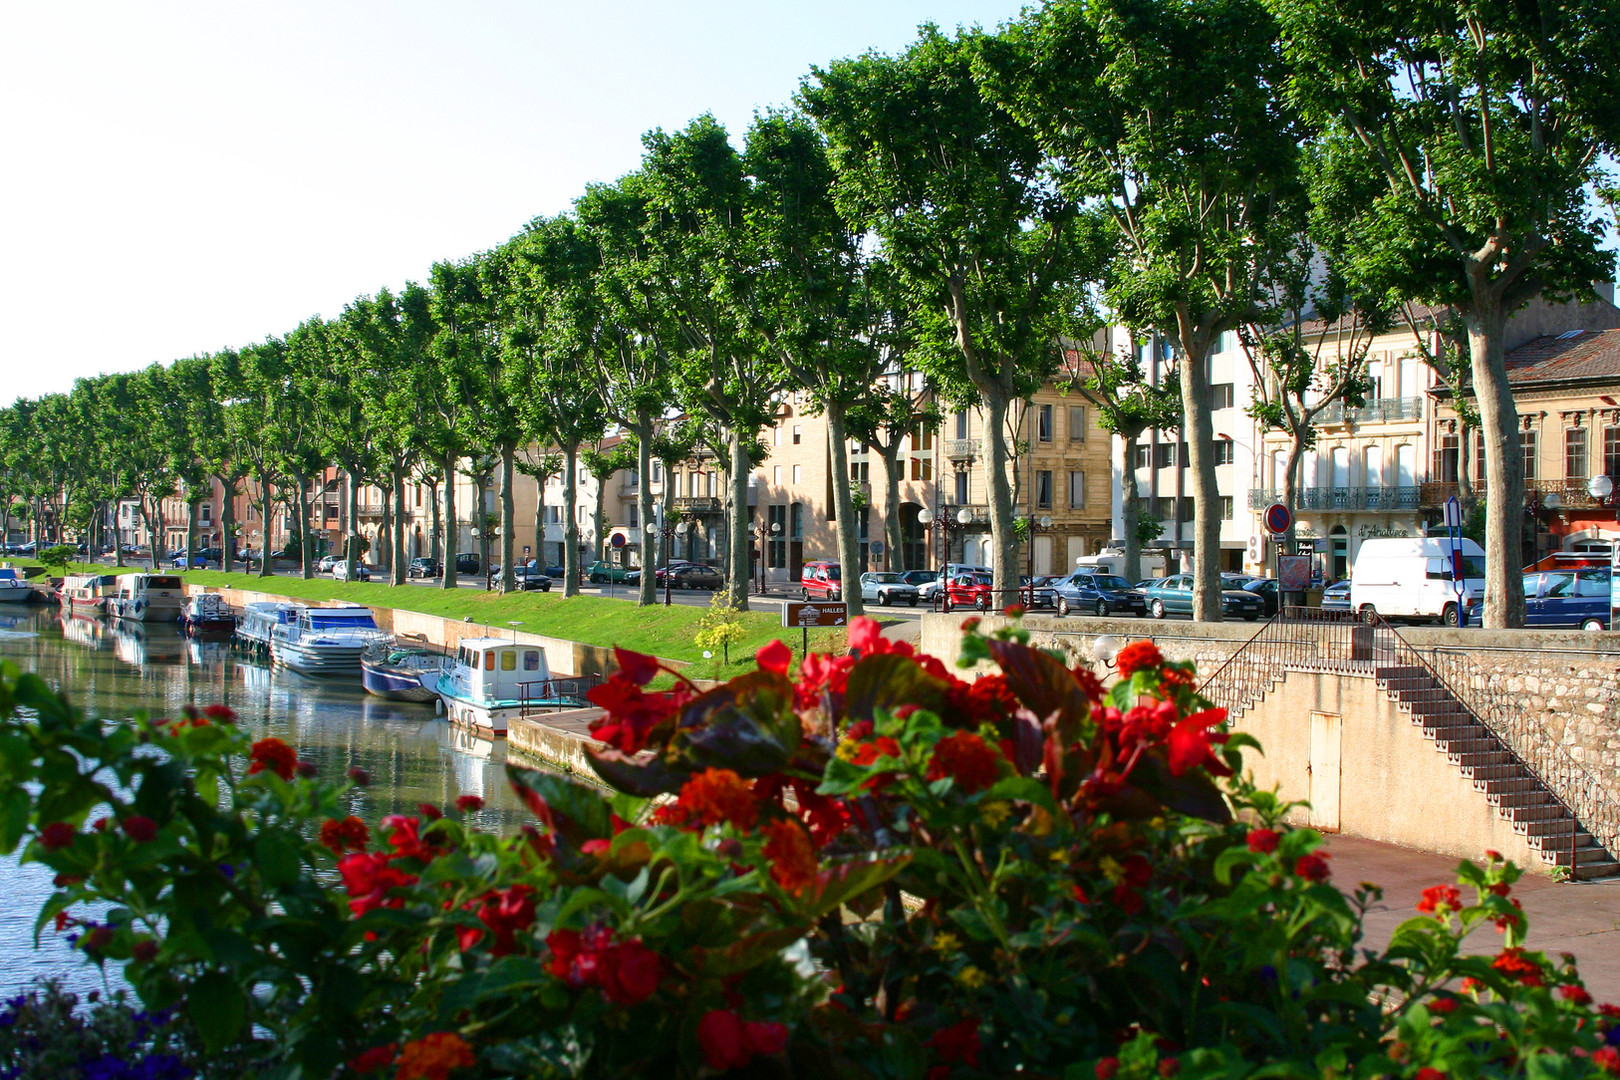 CRTMP_0021284_Narbonne_C_PDavy_CRTOccita